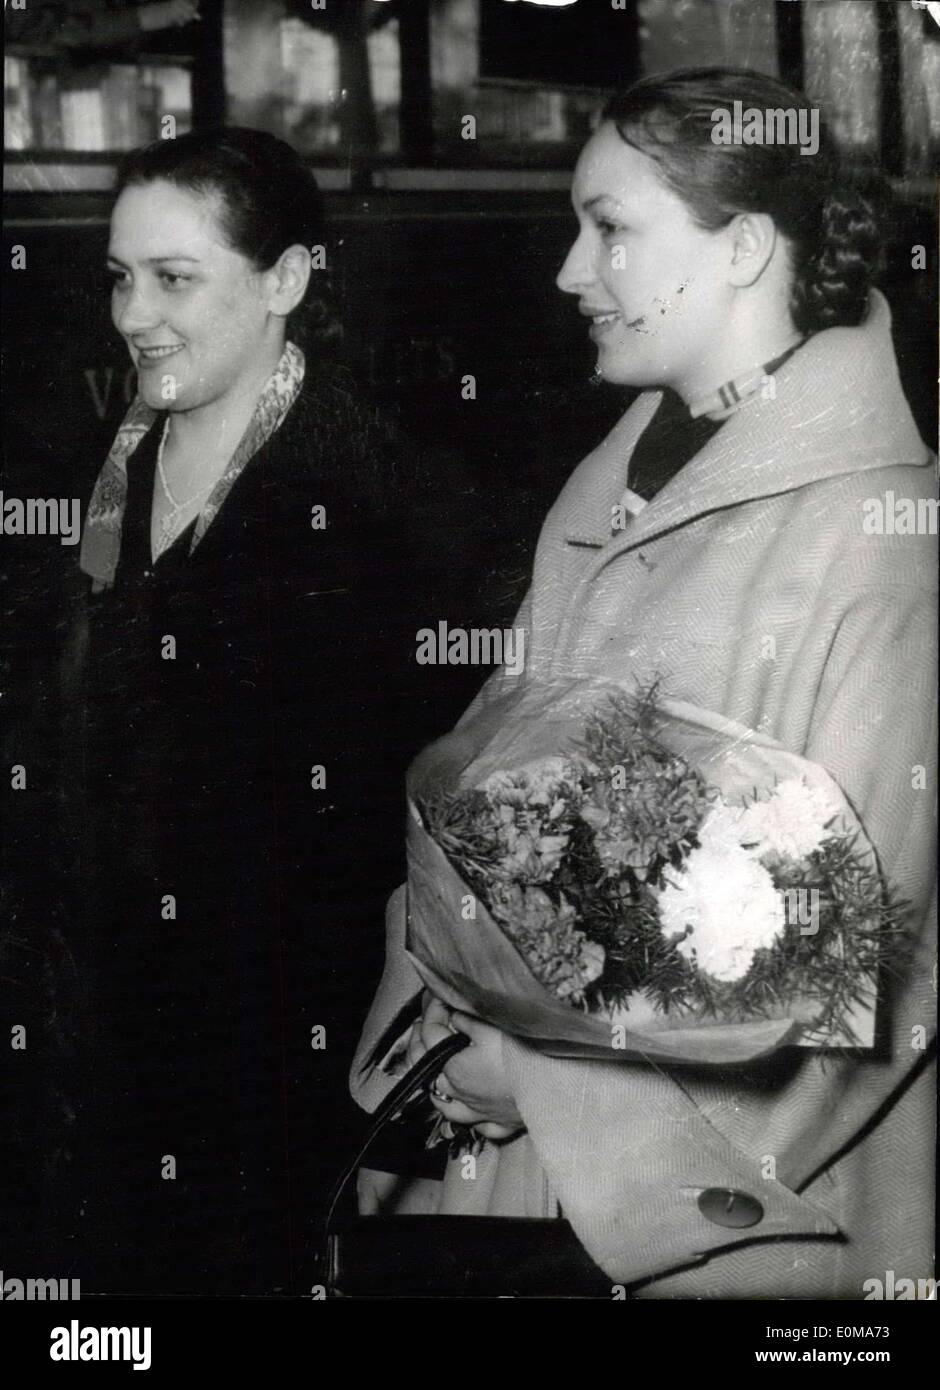 Mar. 25, 1954 - Russian Screen Stars at Cannes Cine Festival: E. Lutchko (left) and L. Orlova arrying Flowers), the two Russia - Stock Image